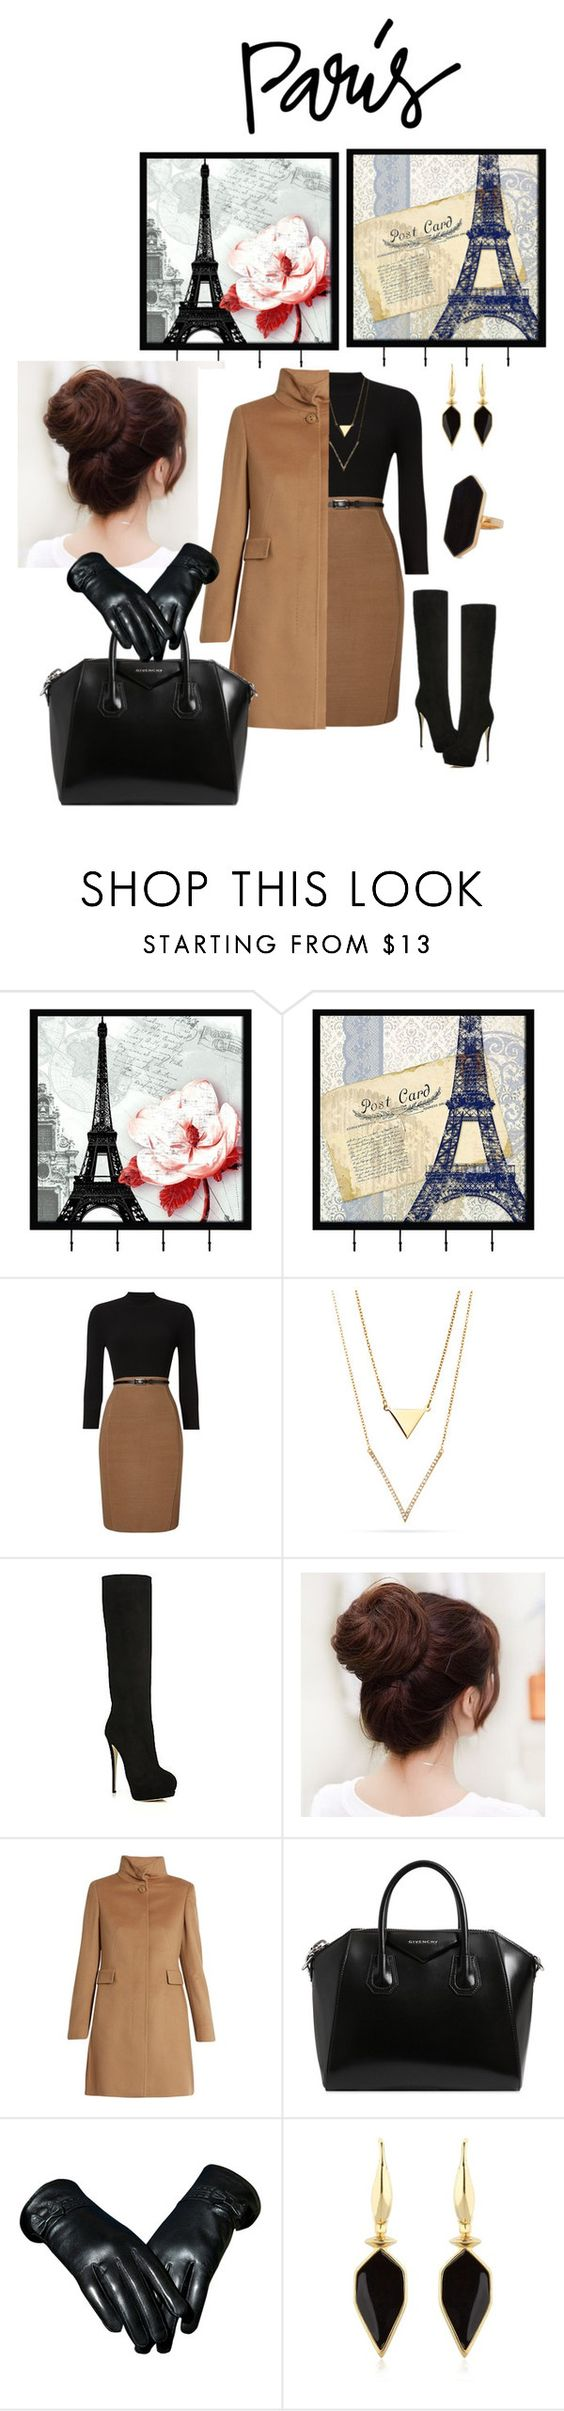 """""""Untitled #560"""" by armsdani ❤ liked on Polyvore featuring Universal Lighting and Decor, Phase Eight, Giuseppe Zanotti, MaxMara, Givenchy, Isabel Marant and Jaeger"""